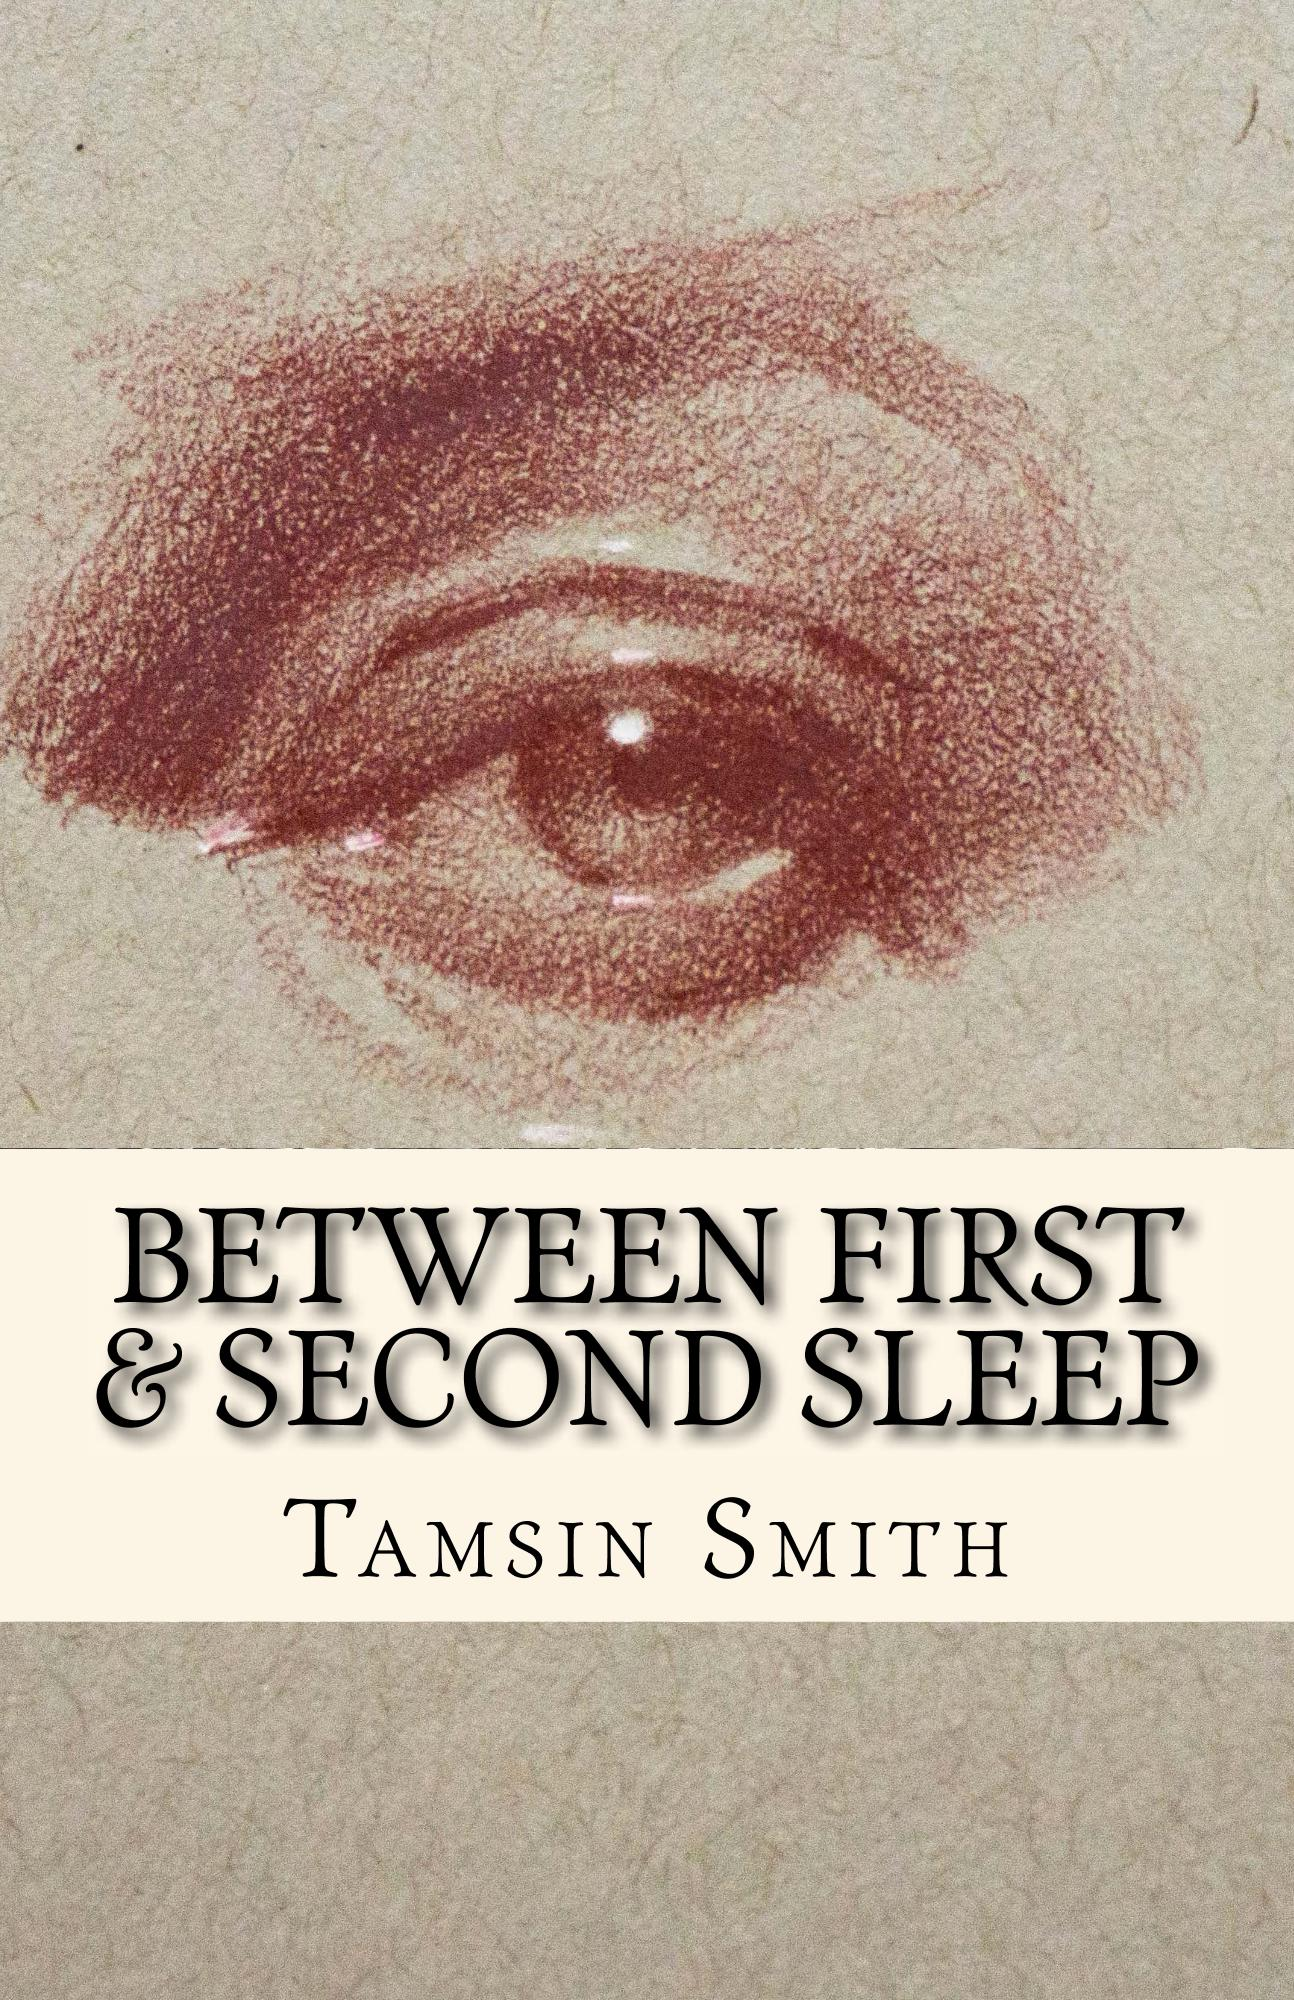 First and second sleep